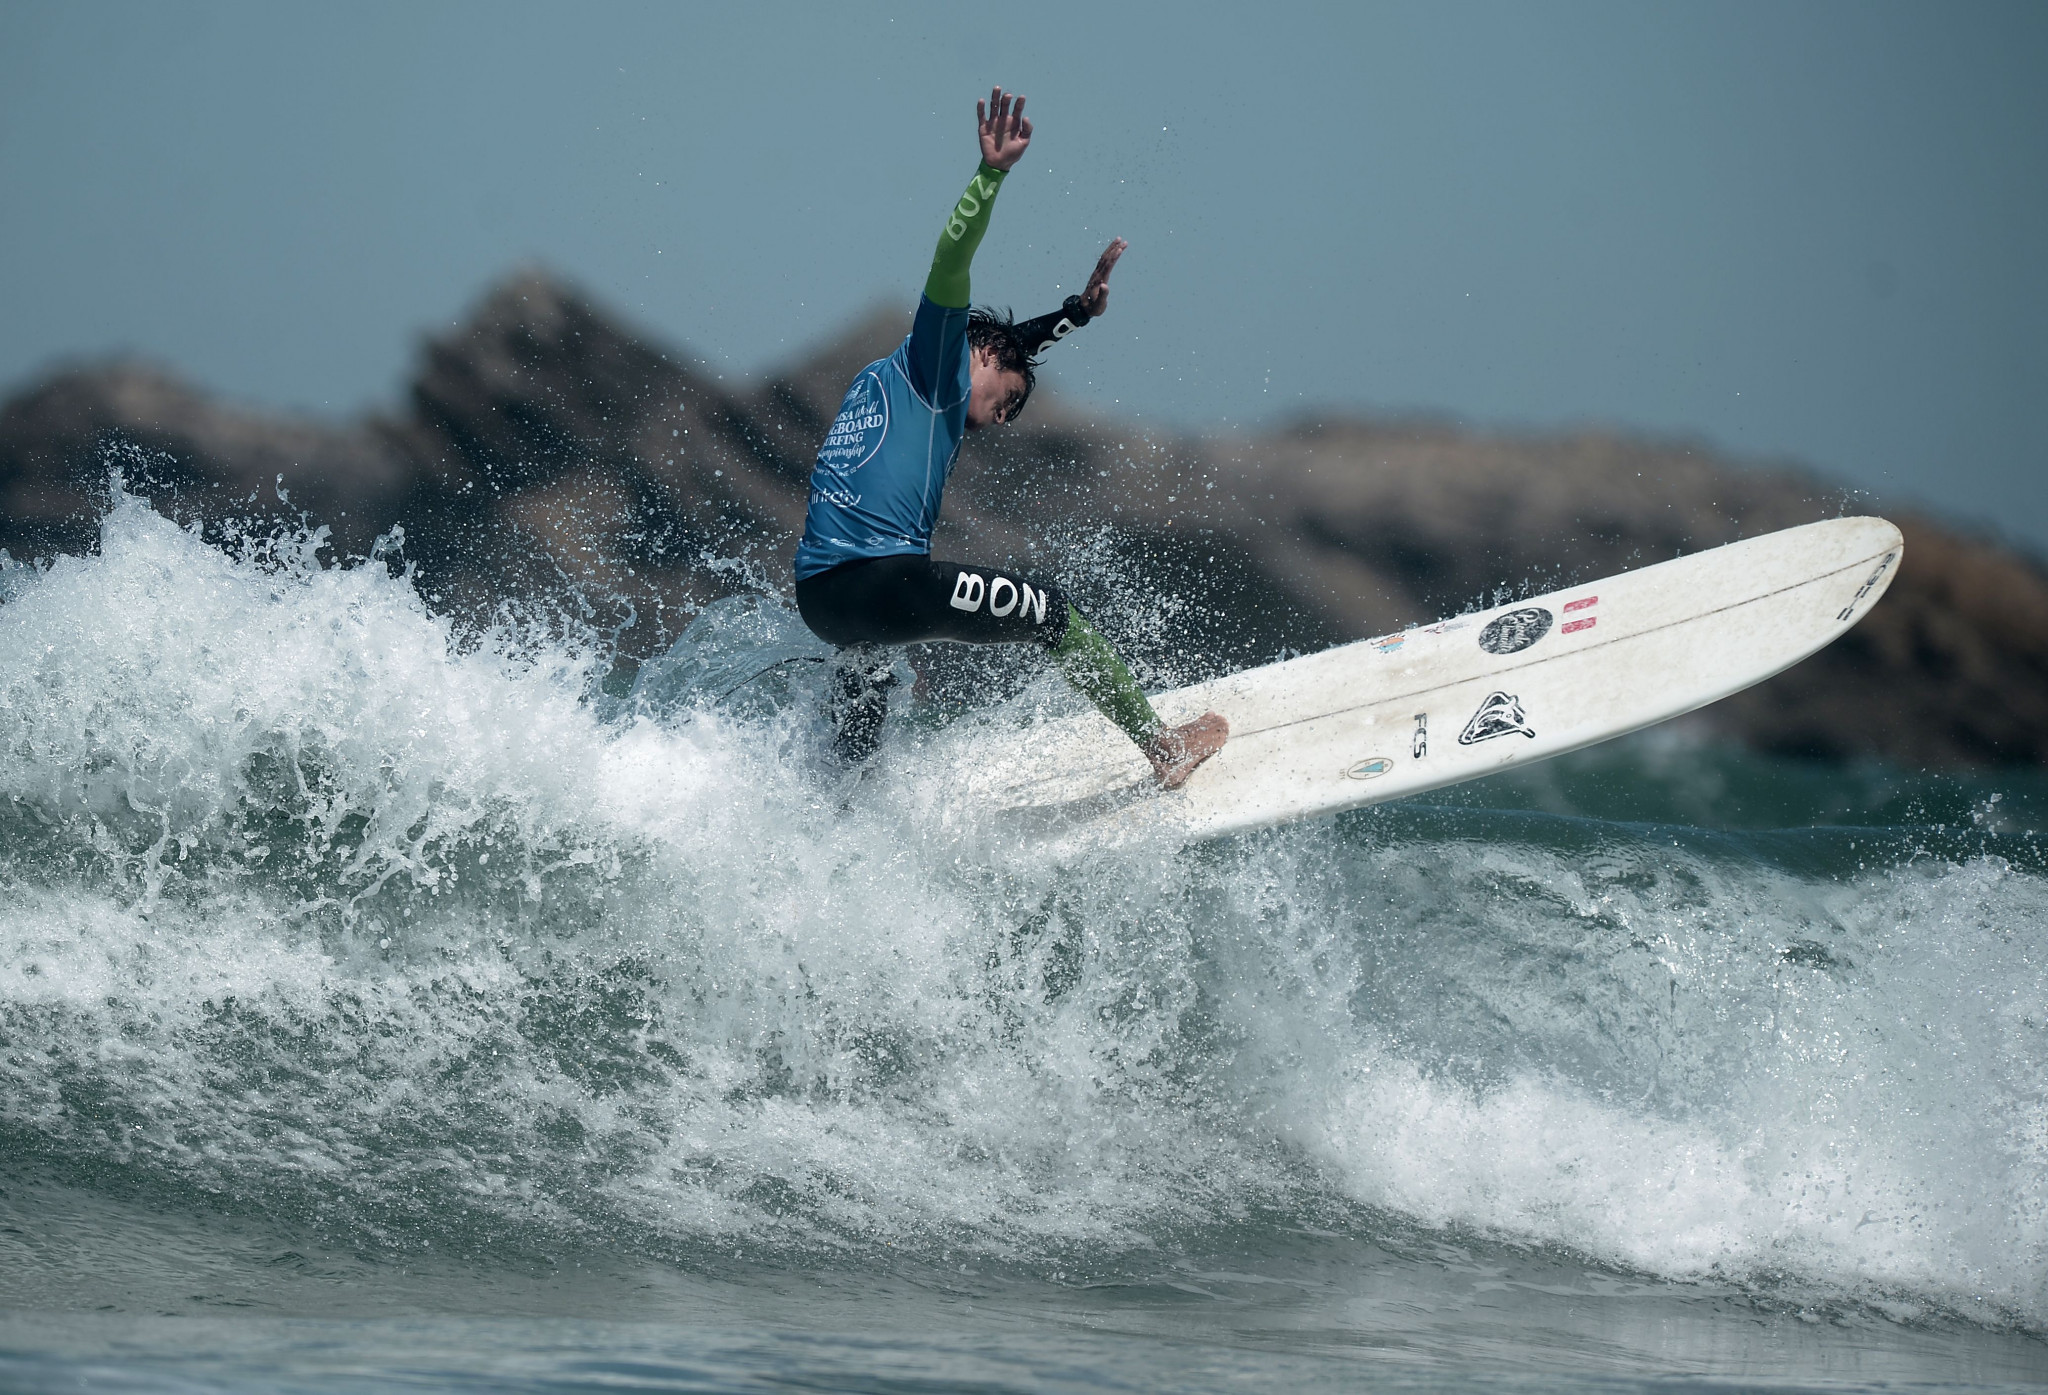 Financial support for surfers in wake of COVID-19 pandemic